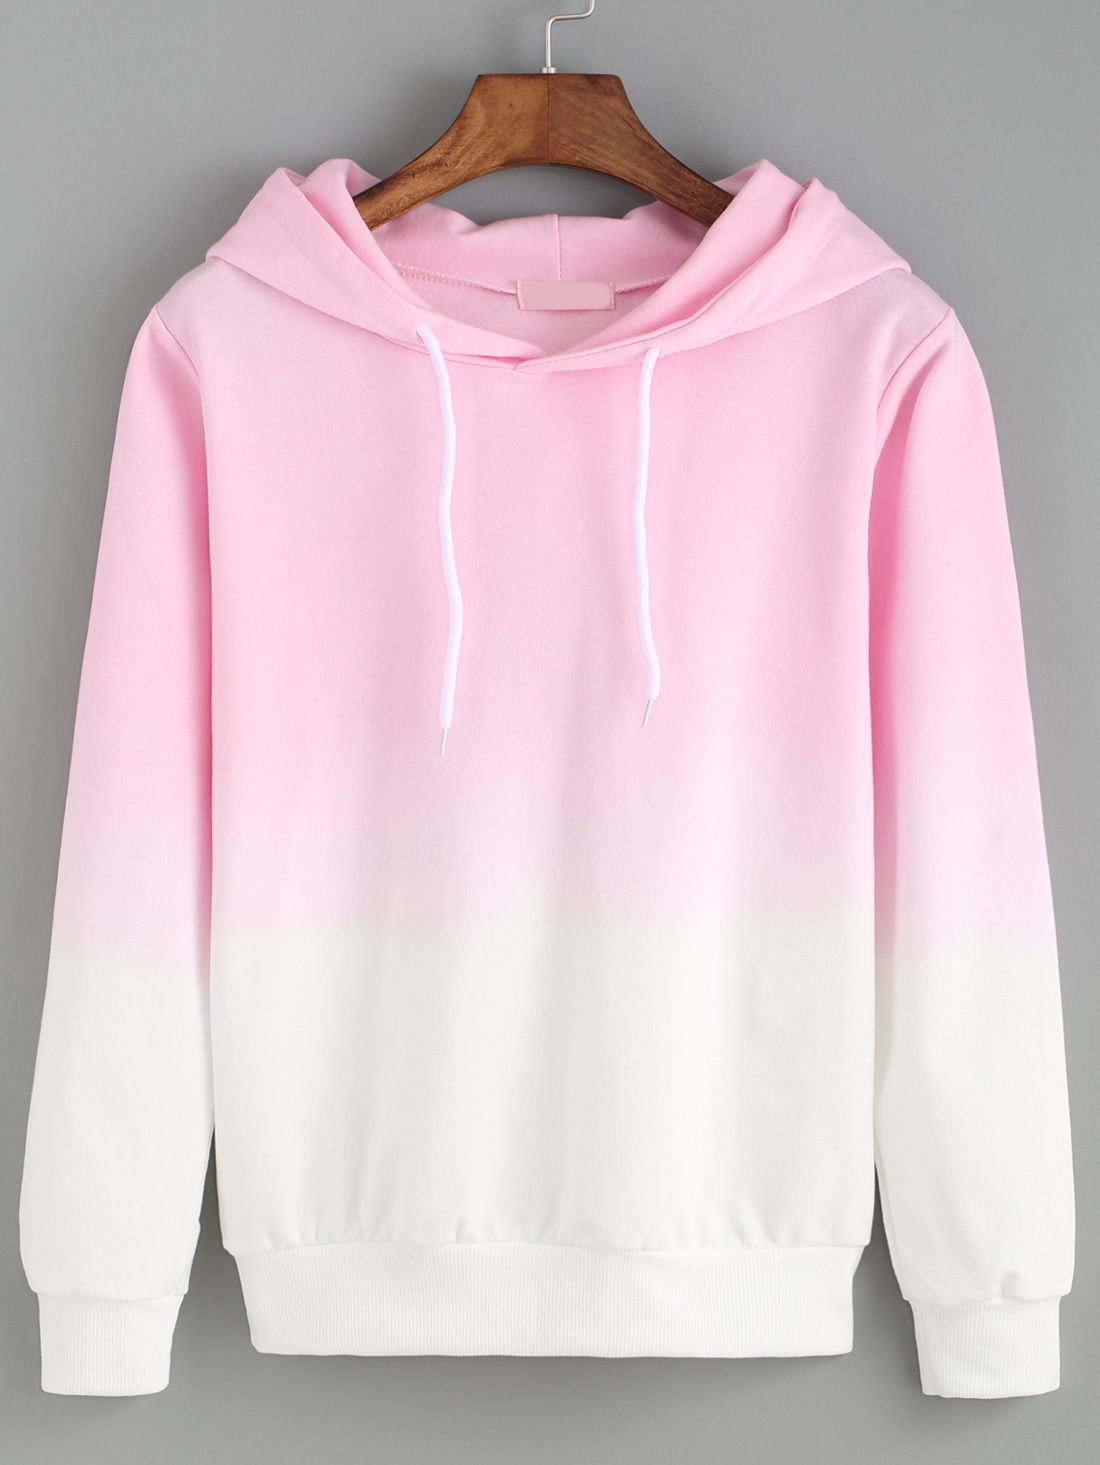 Stylish hoodies for ladies